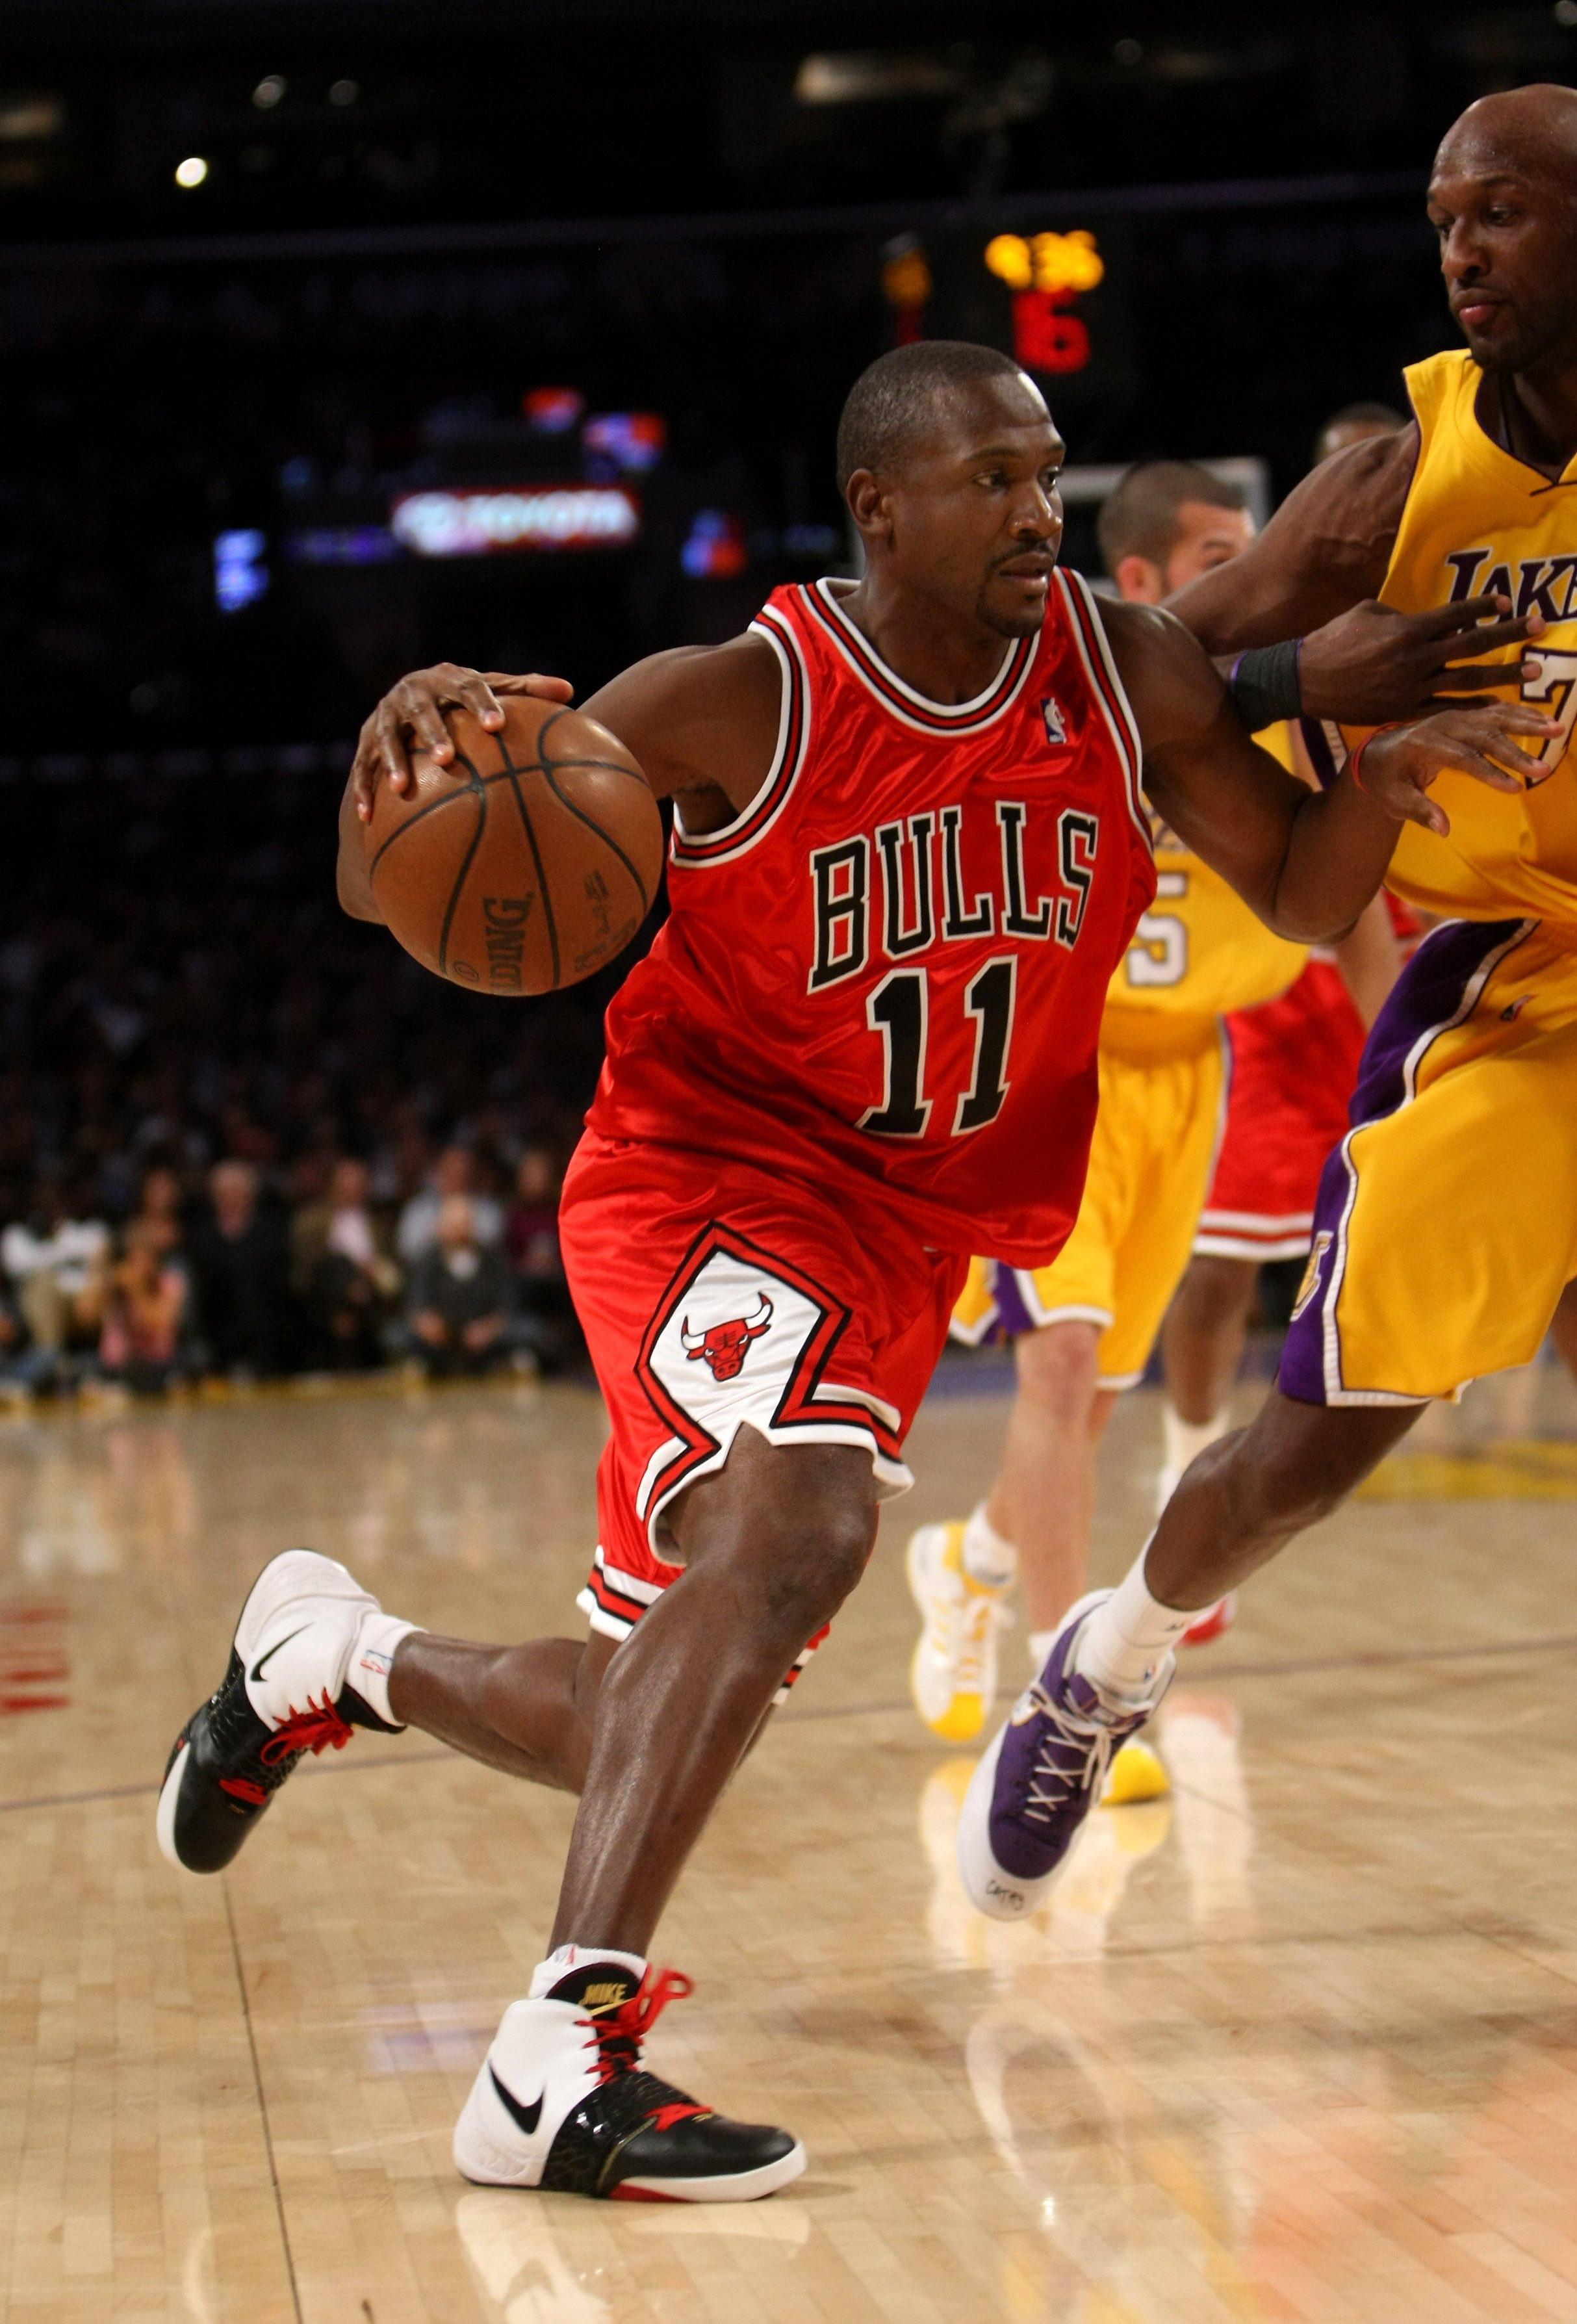 LOS ANGELES, CA - NOVEMBER 18: Lindsey Hunter #11 of the Chicago Bulls drives against Lamar Odom #7 of the Los Angeles Lakers on November 18, 2008 at Staples Center in Los Angeles, California. The Lakers won 116-109. NOTE TO USER: User expressly acknowledges and agrees that, by downloading and/or using this Photograph, user is consenting to the terms and conditions of the Getty Images License Agreement. (Photo by Stephen Dunn/Getty Images)